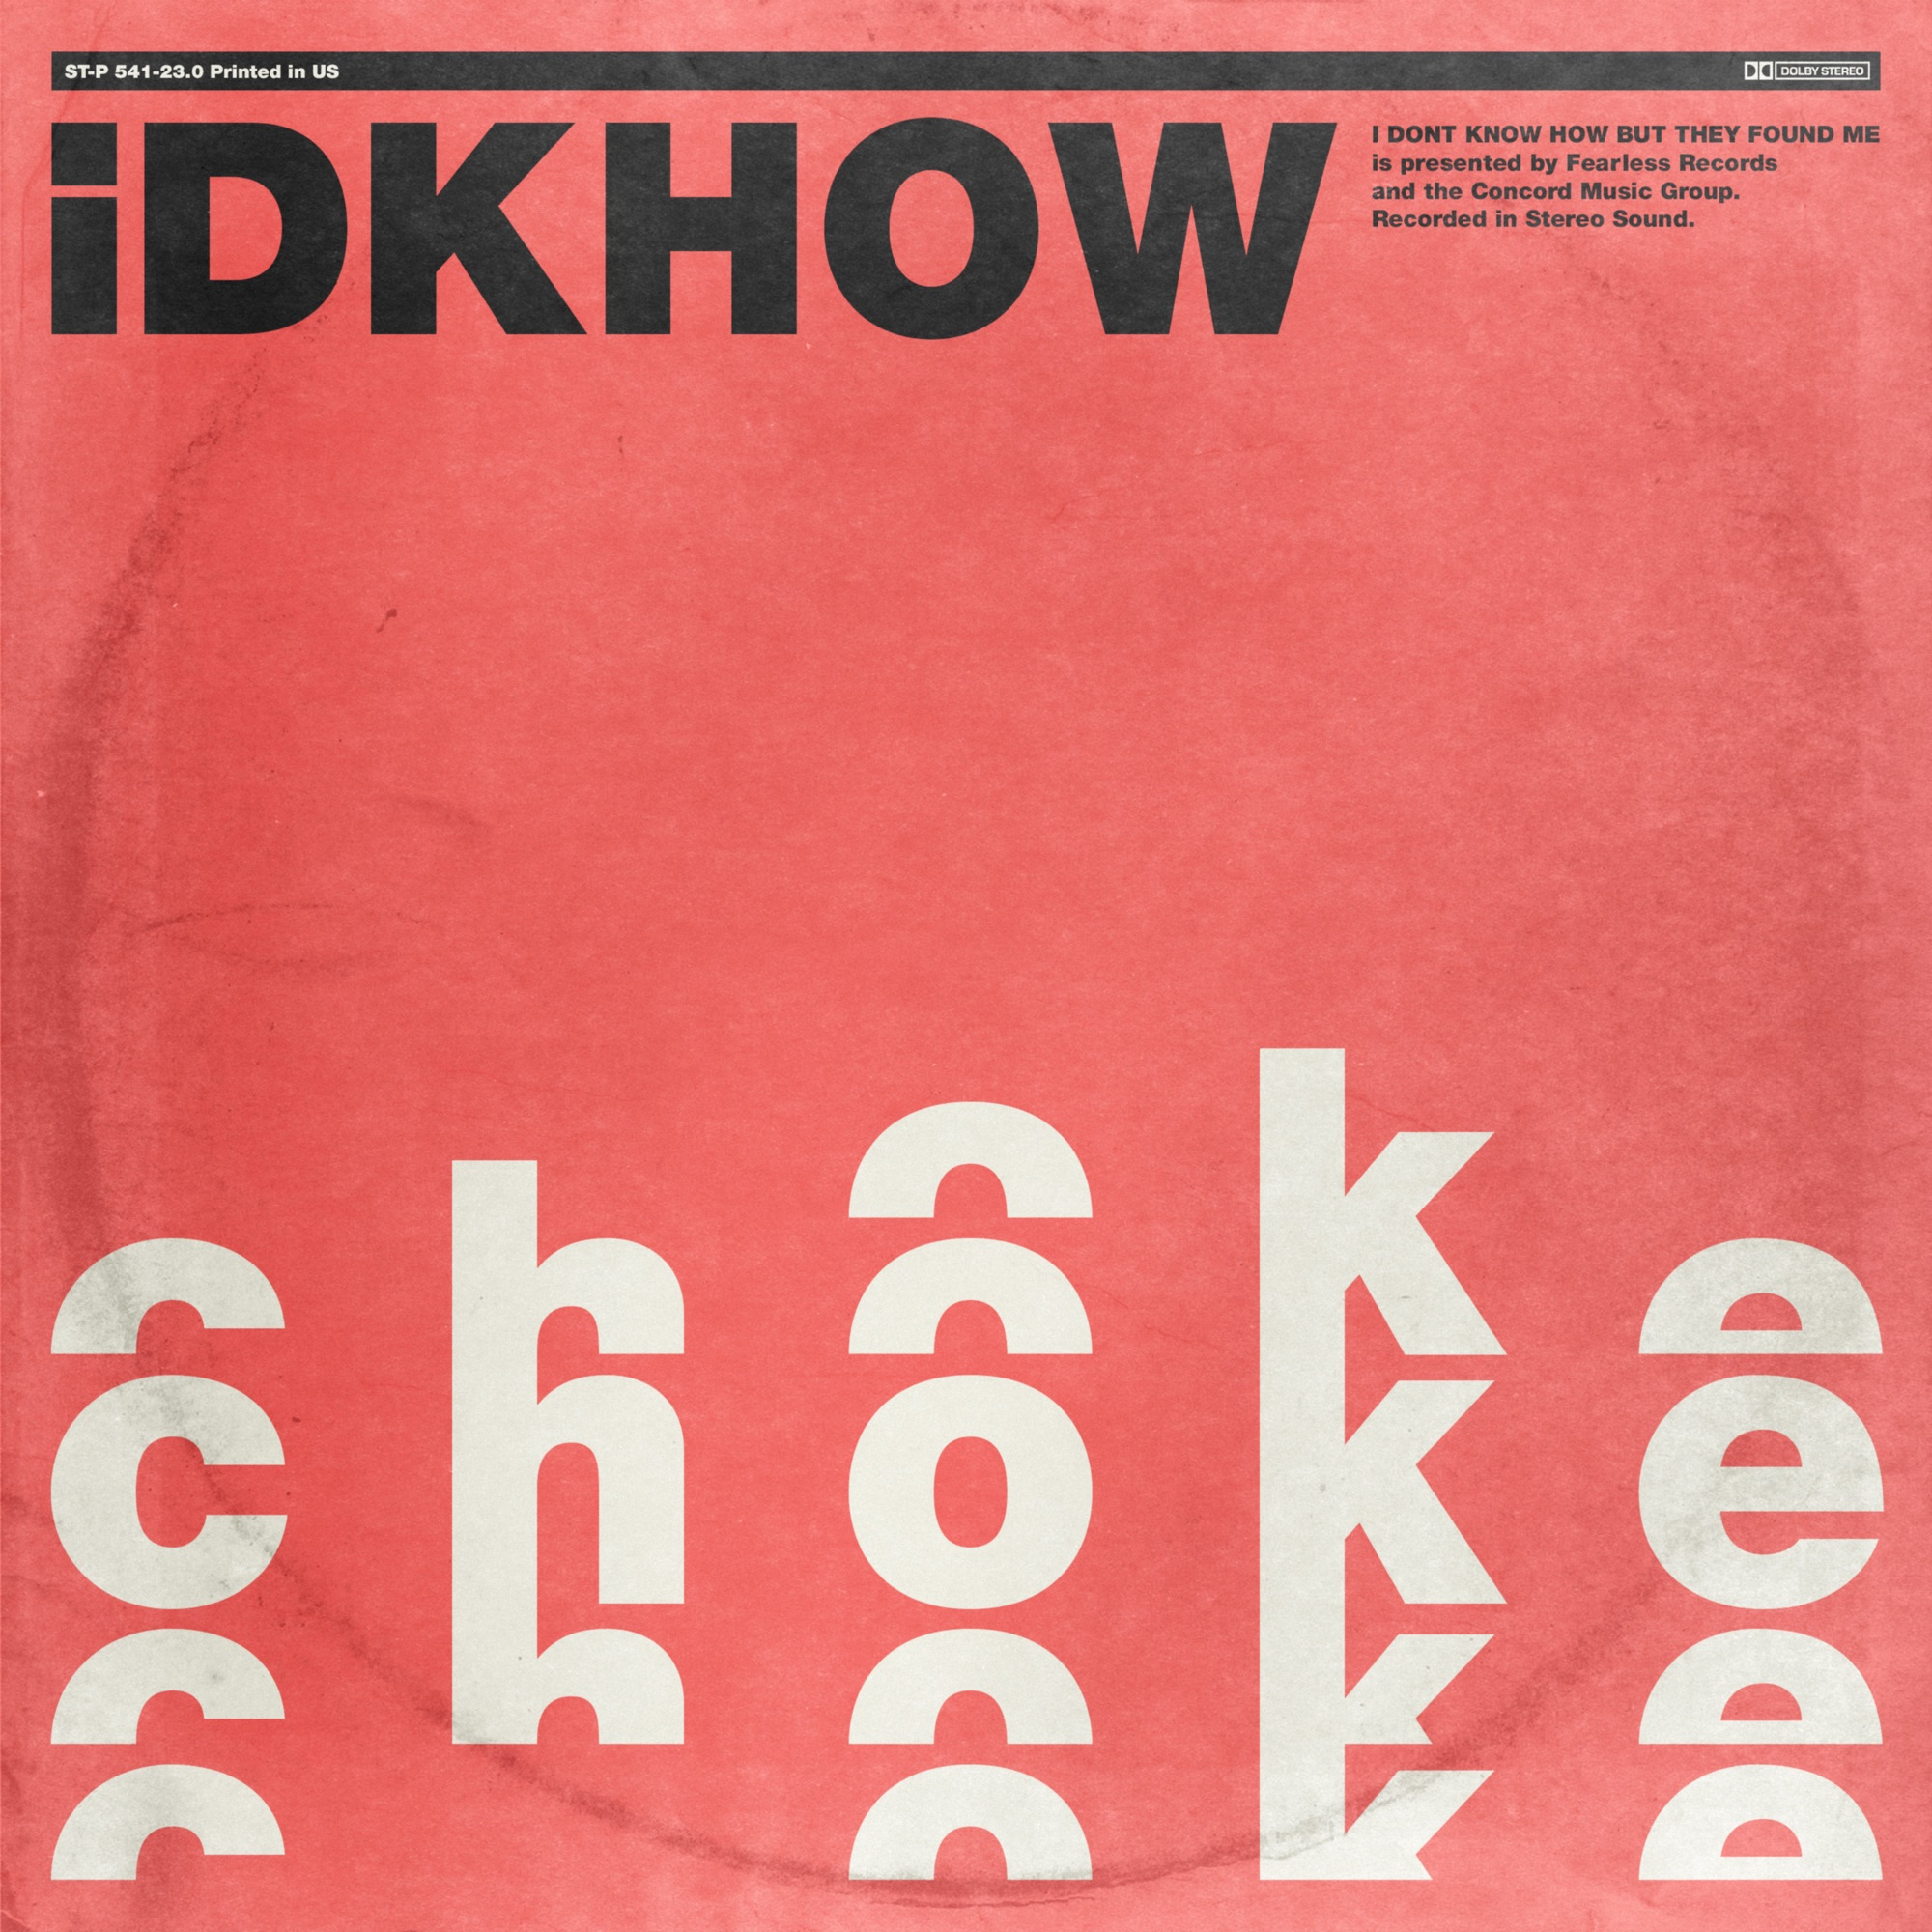 Art for Choke by I DONT KNOW HOW BUT THEY FOUND ME